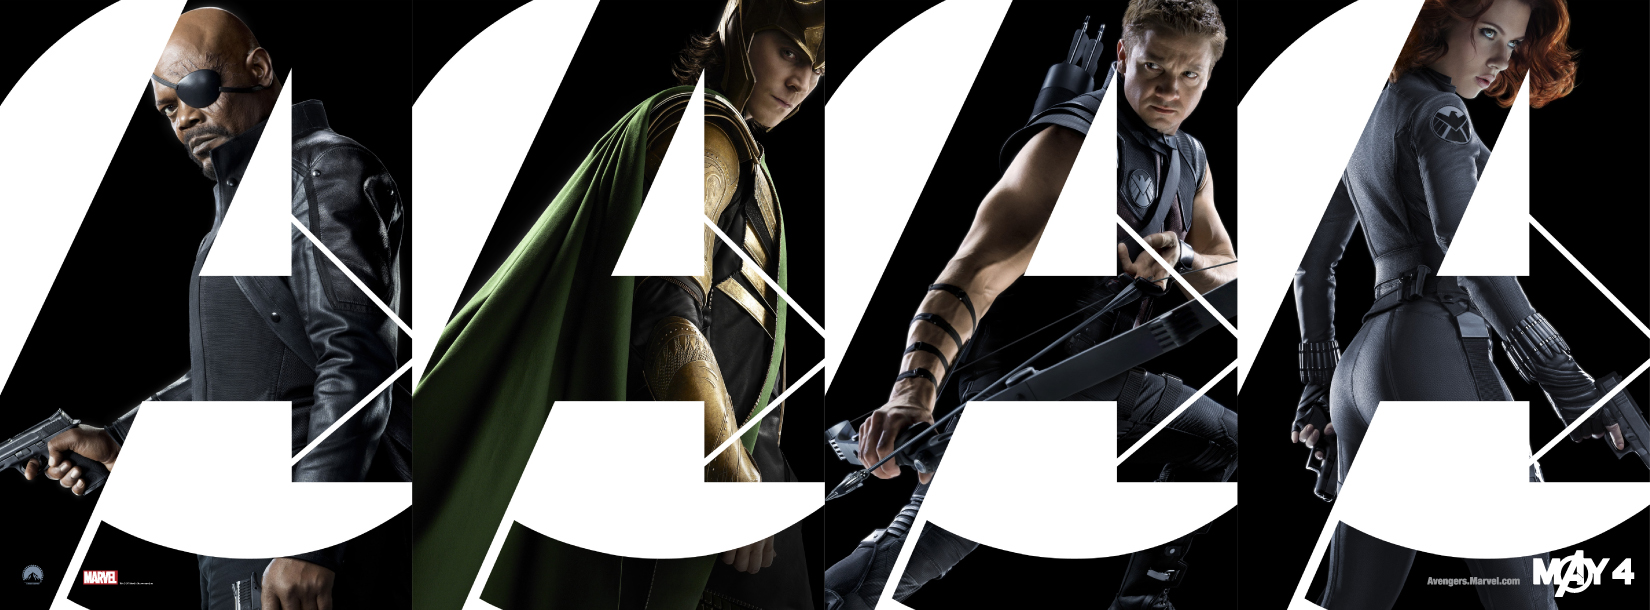 [UPDATED] As Expected, The Avengers Smashes Domestic Box Office Record